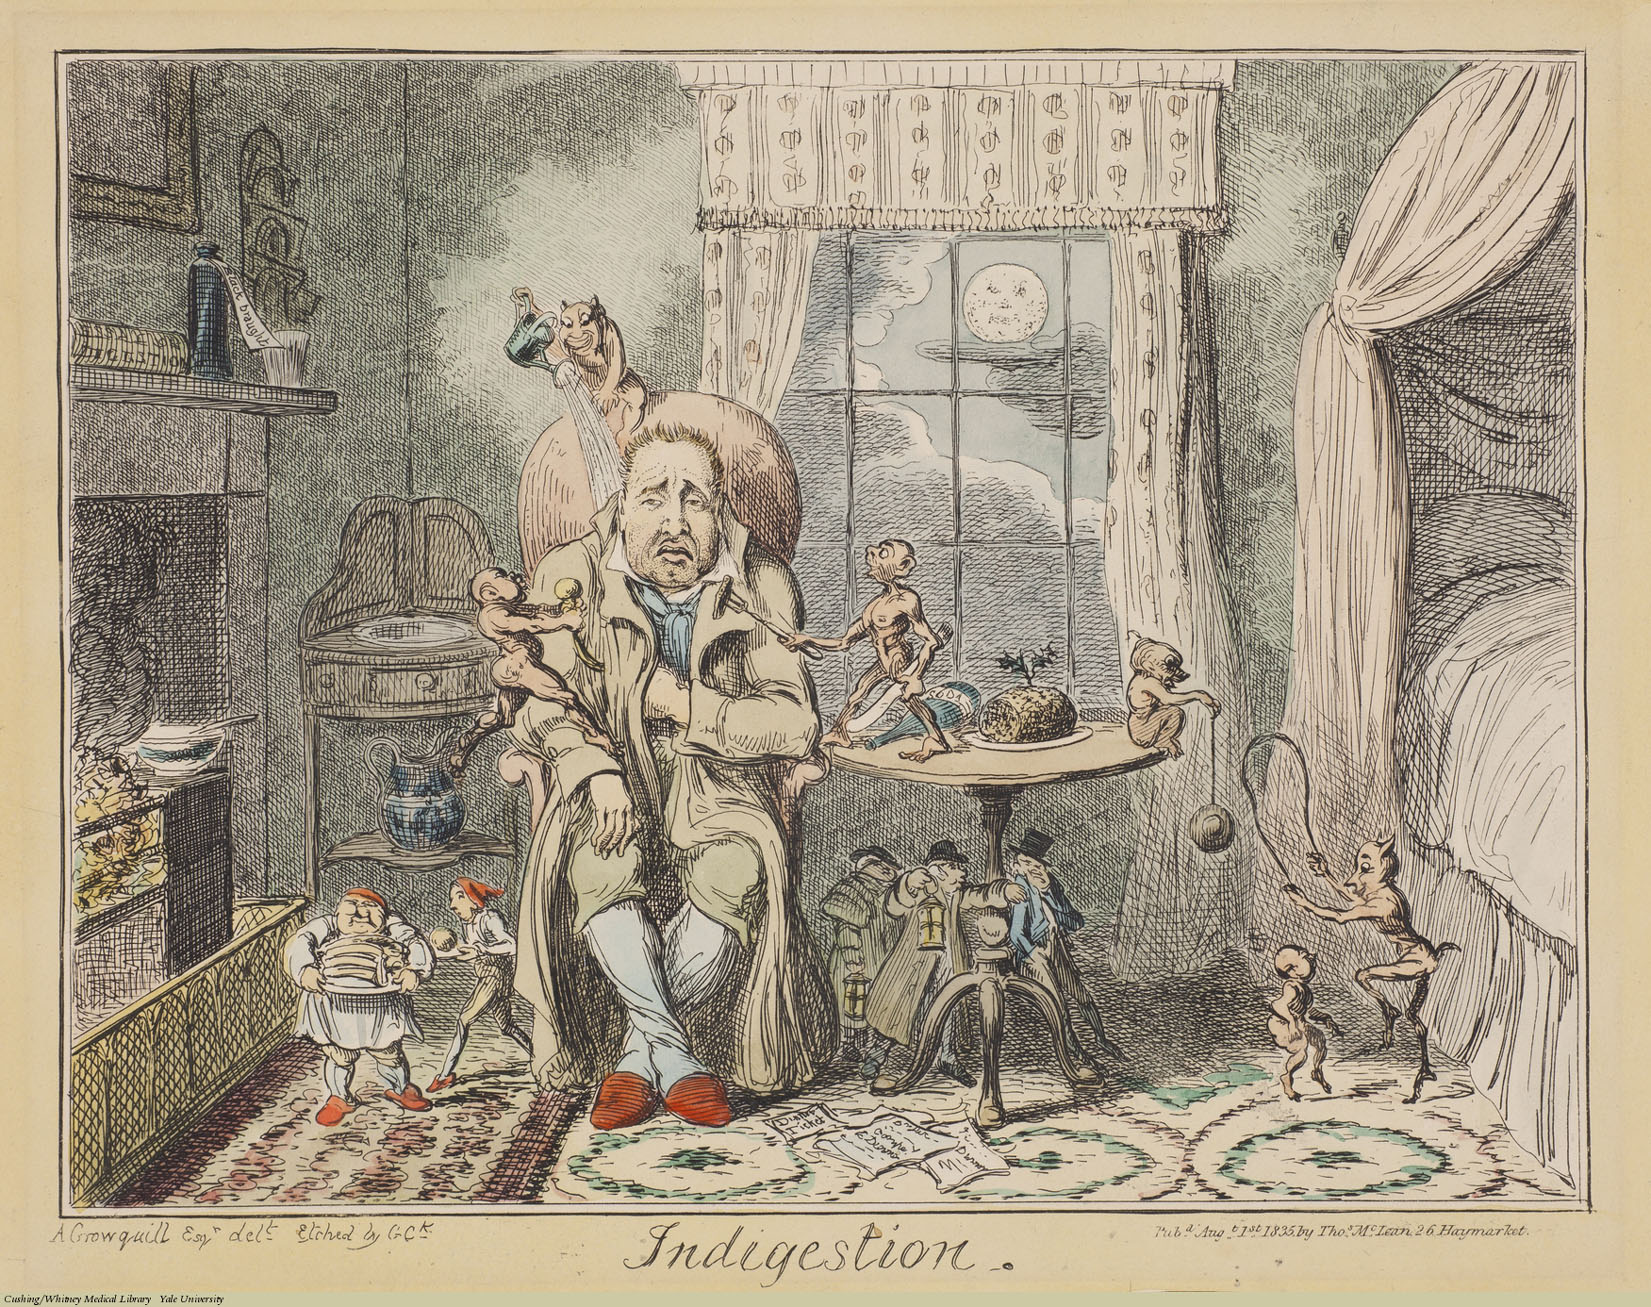 Indigestion, George Cruikshank, Etching coloured. Subject: Indigestion, Pain, Devils & Demons.